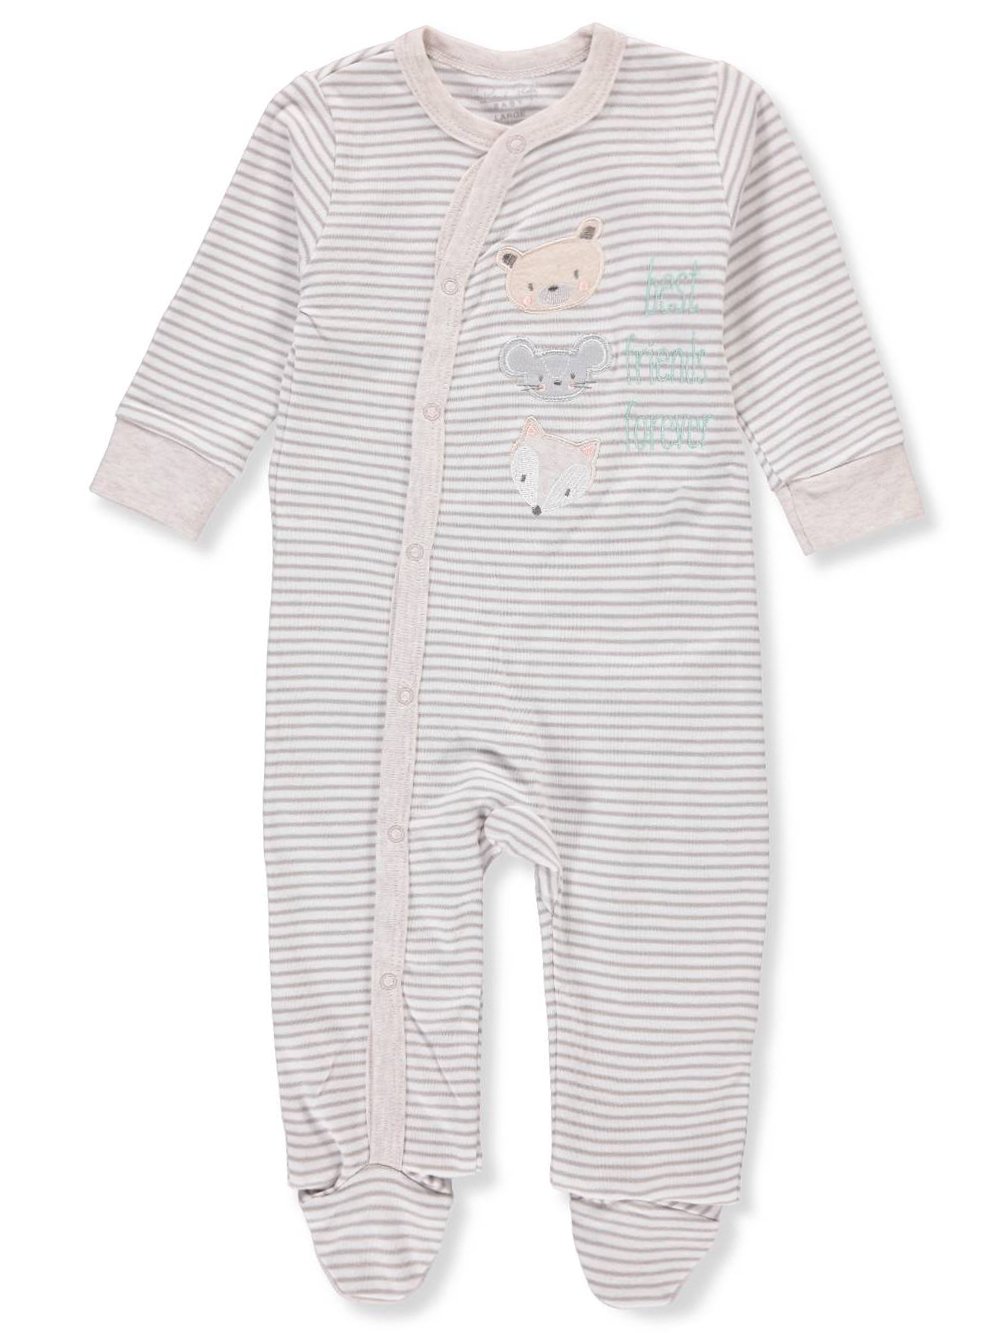 Rene Rofe Baby Boys' Footed Coverall